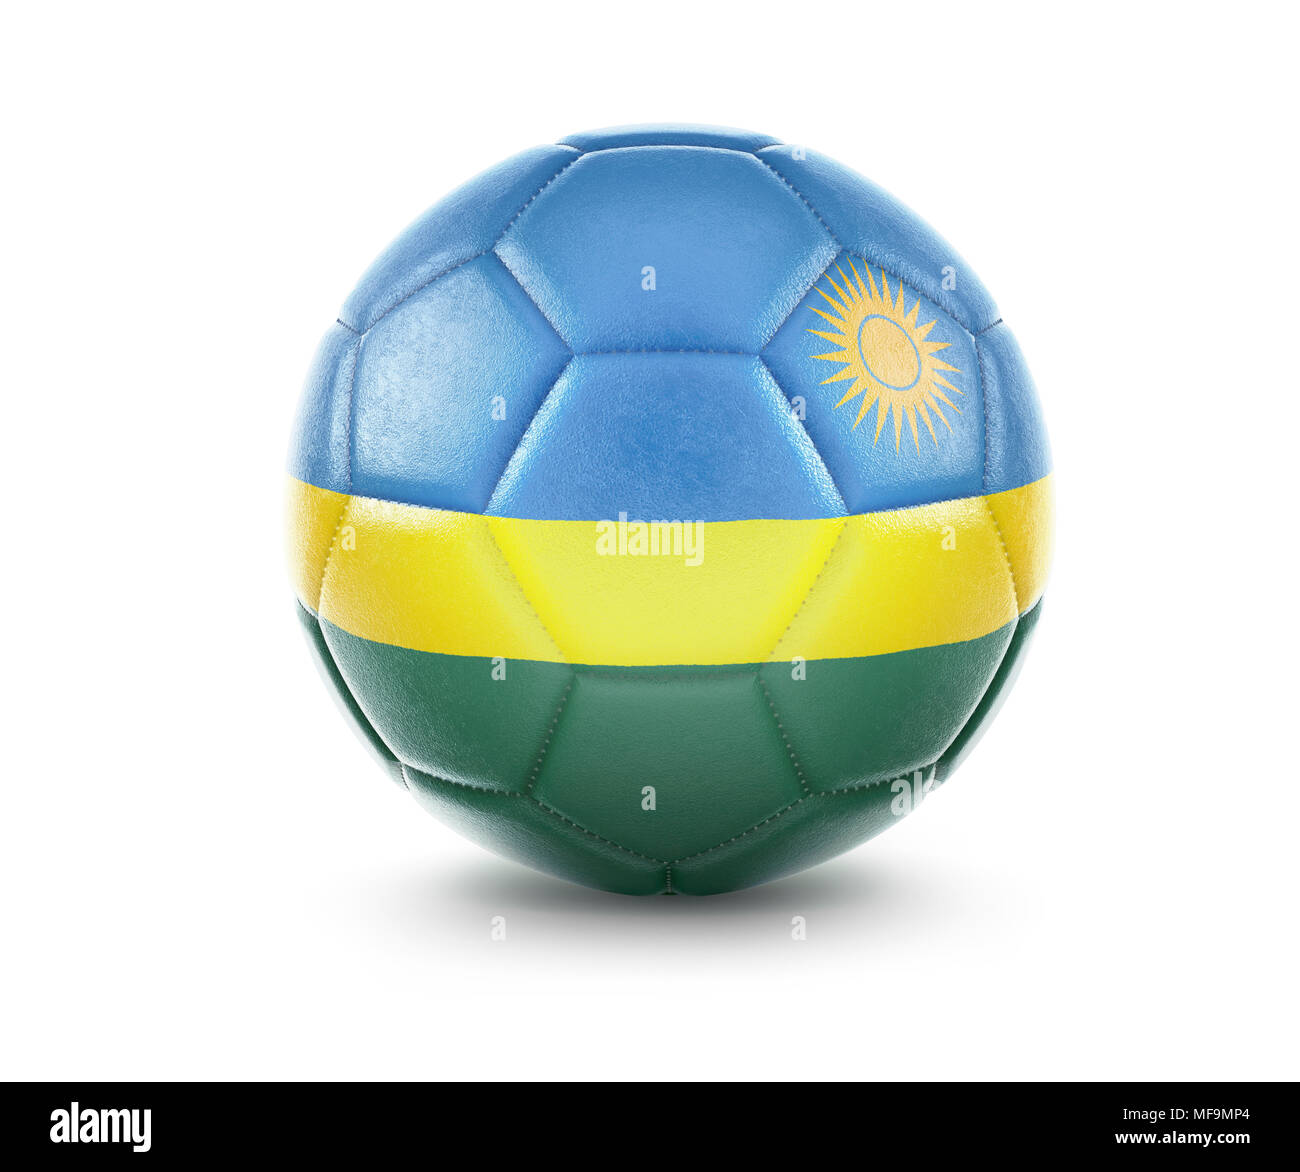 High qualitiy rendering of a soccer ball with the flag of Rwanda.(series) - Stock Image